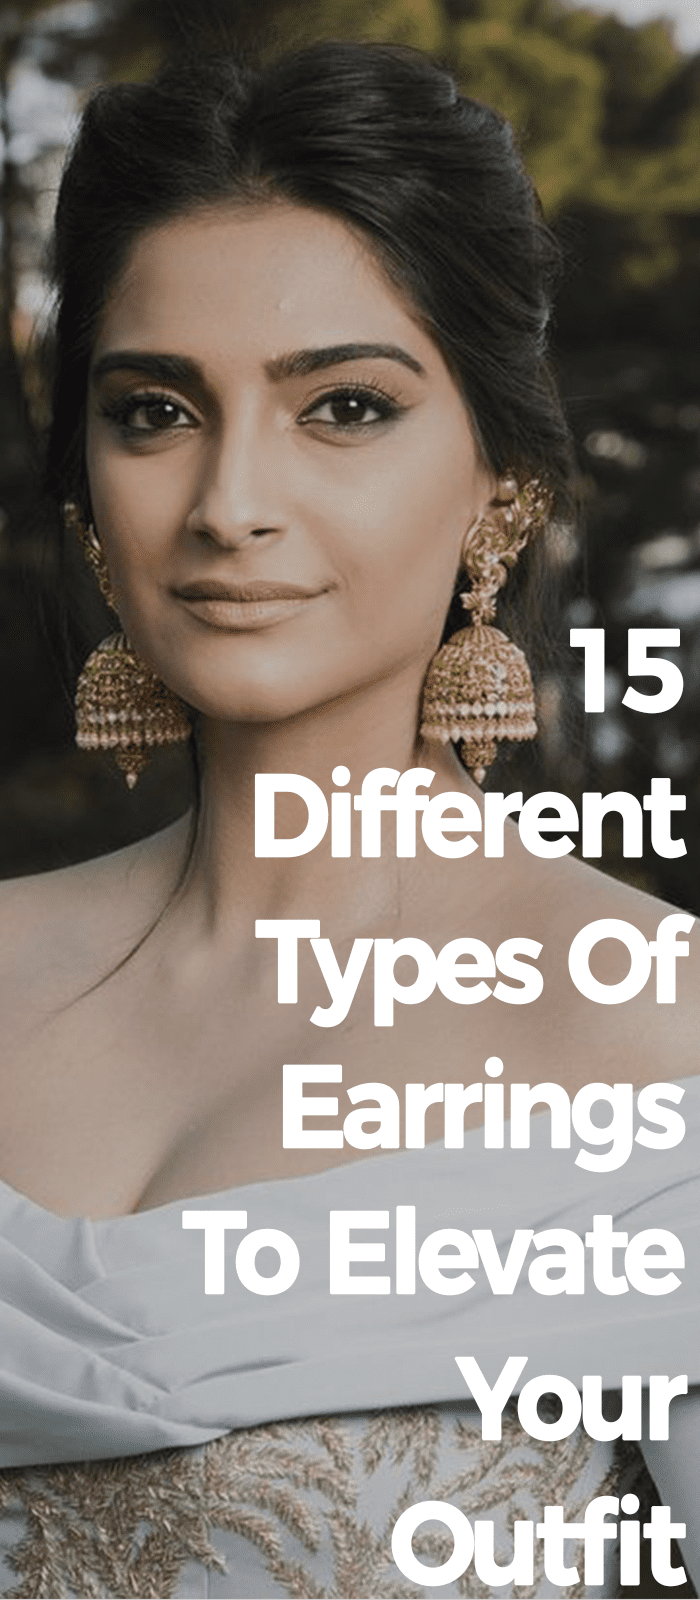 15 Different Types Of Earrings To Elevate Your Outfit!